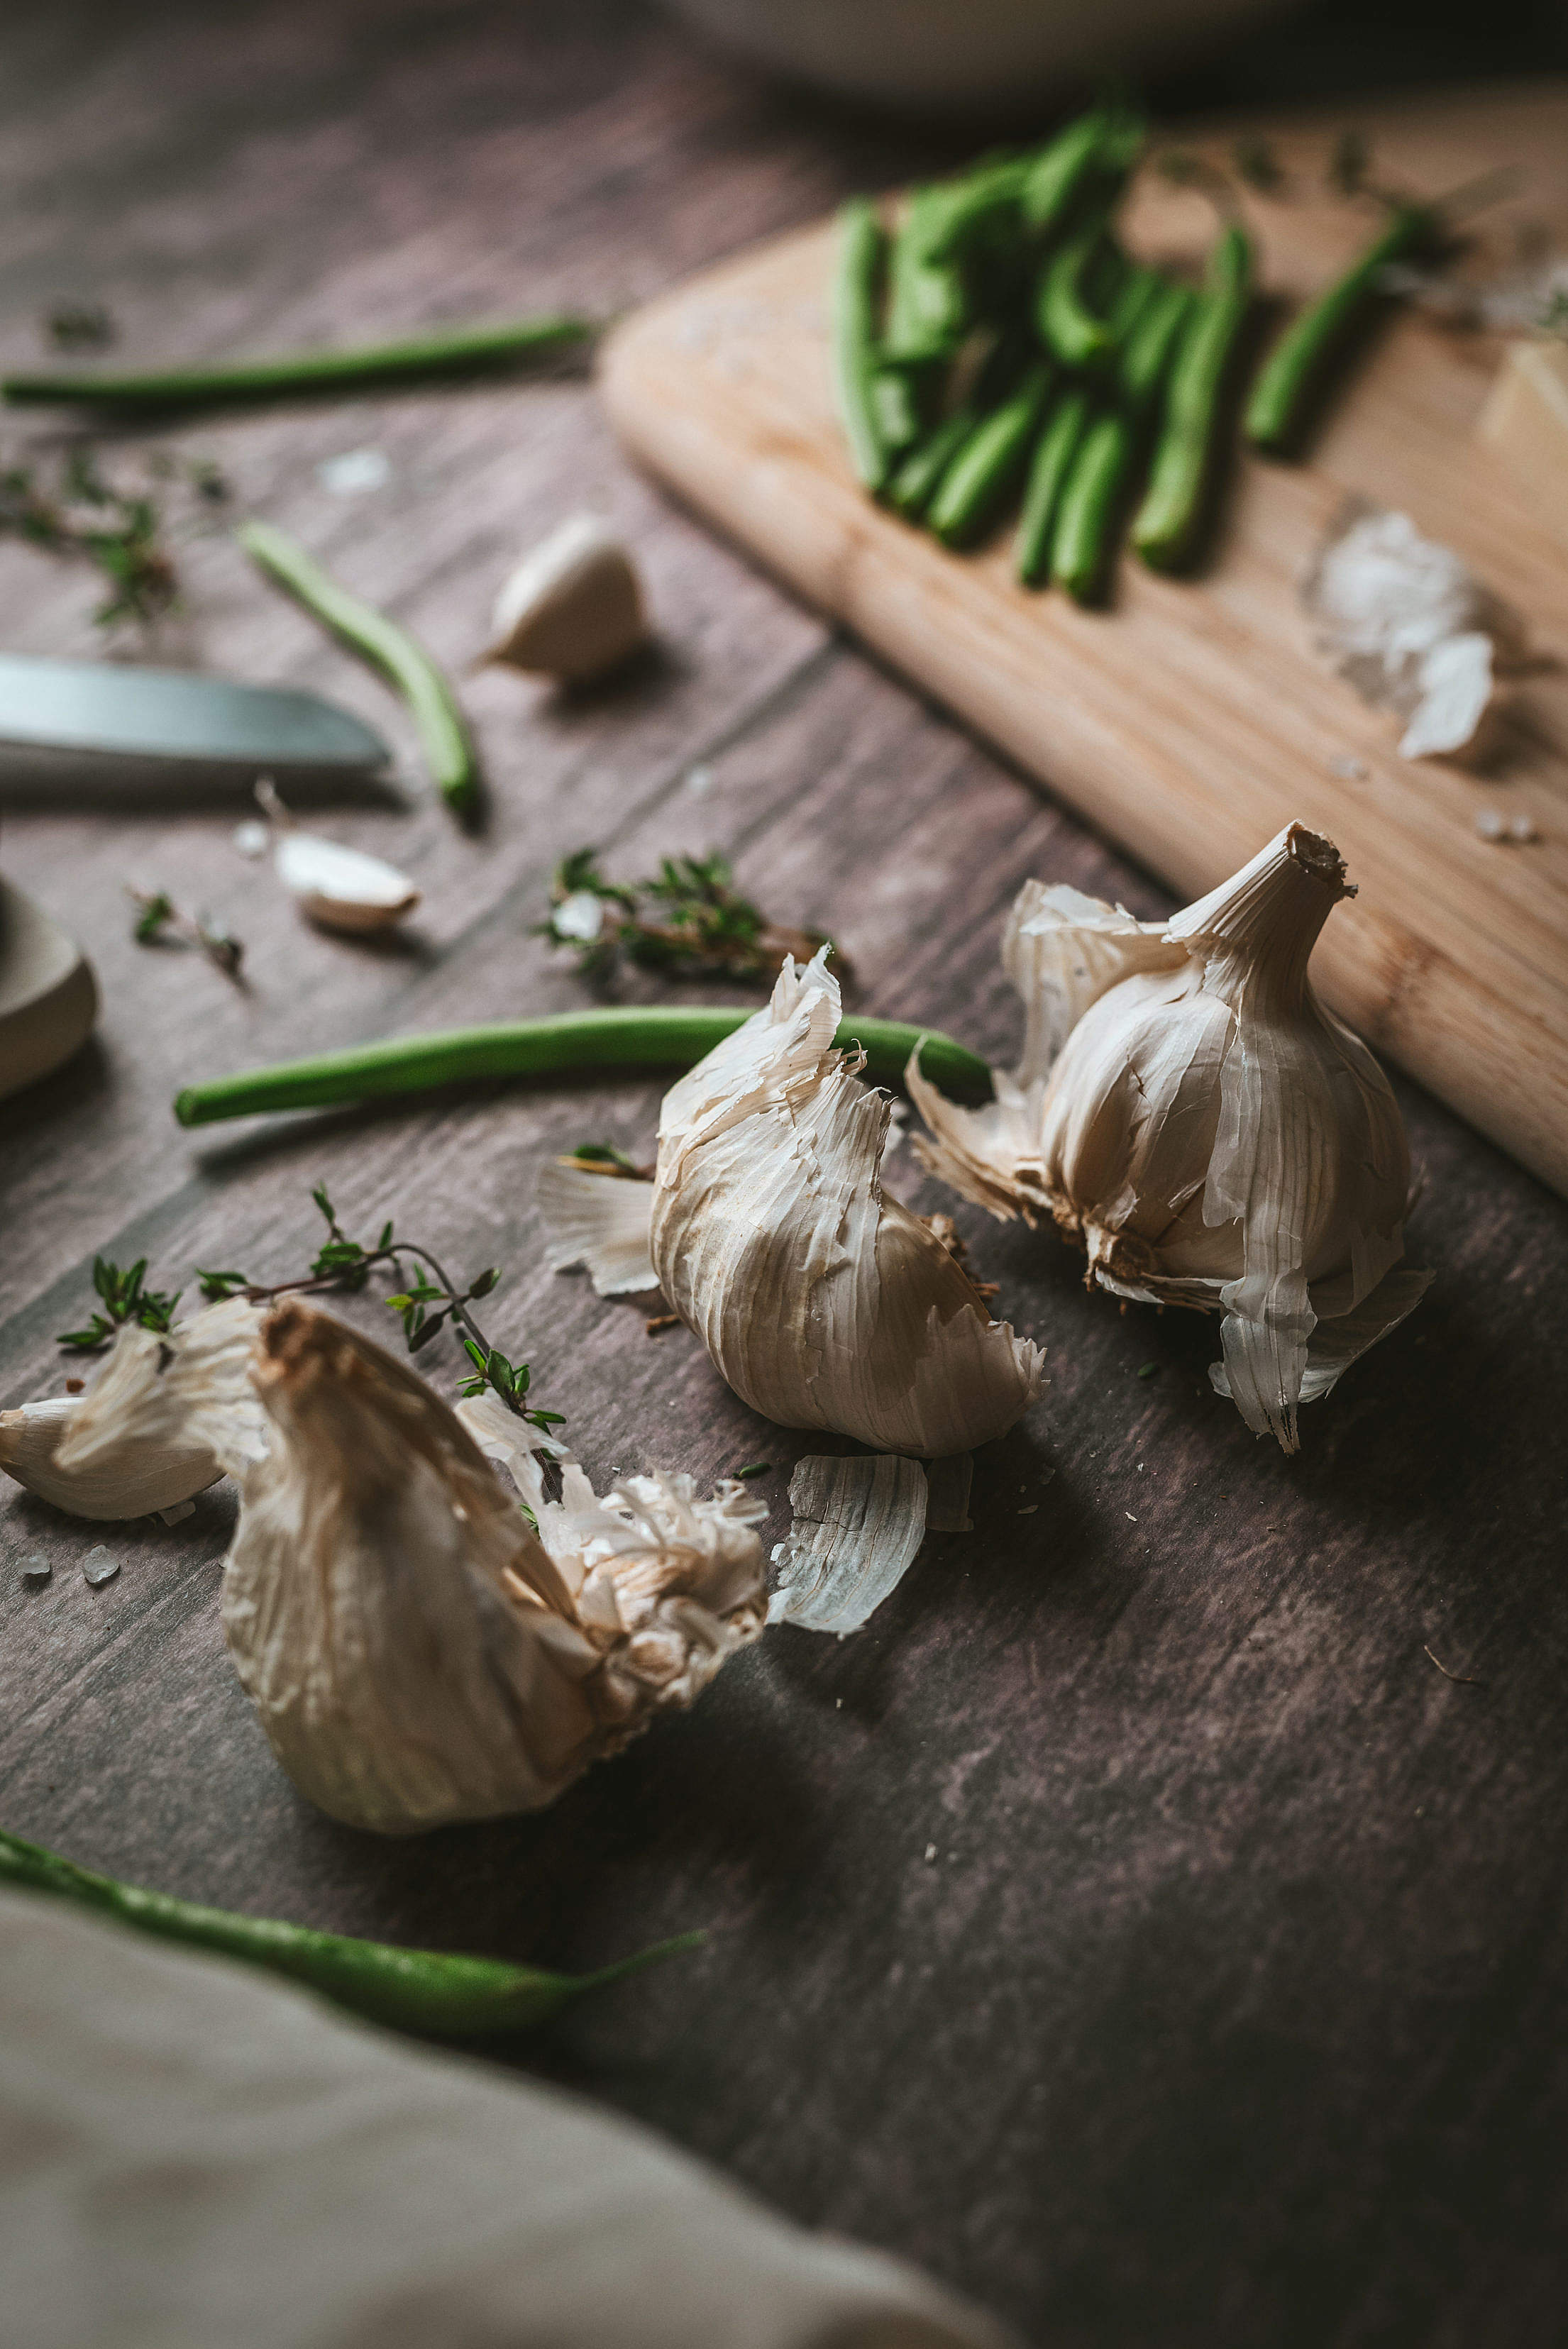 Garlic Head on a Wooden Rustic Table Free Stock Photo